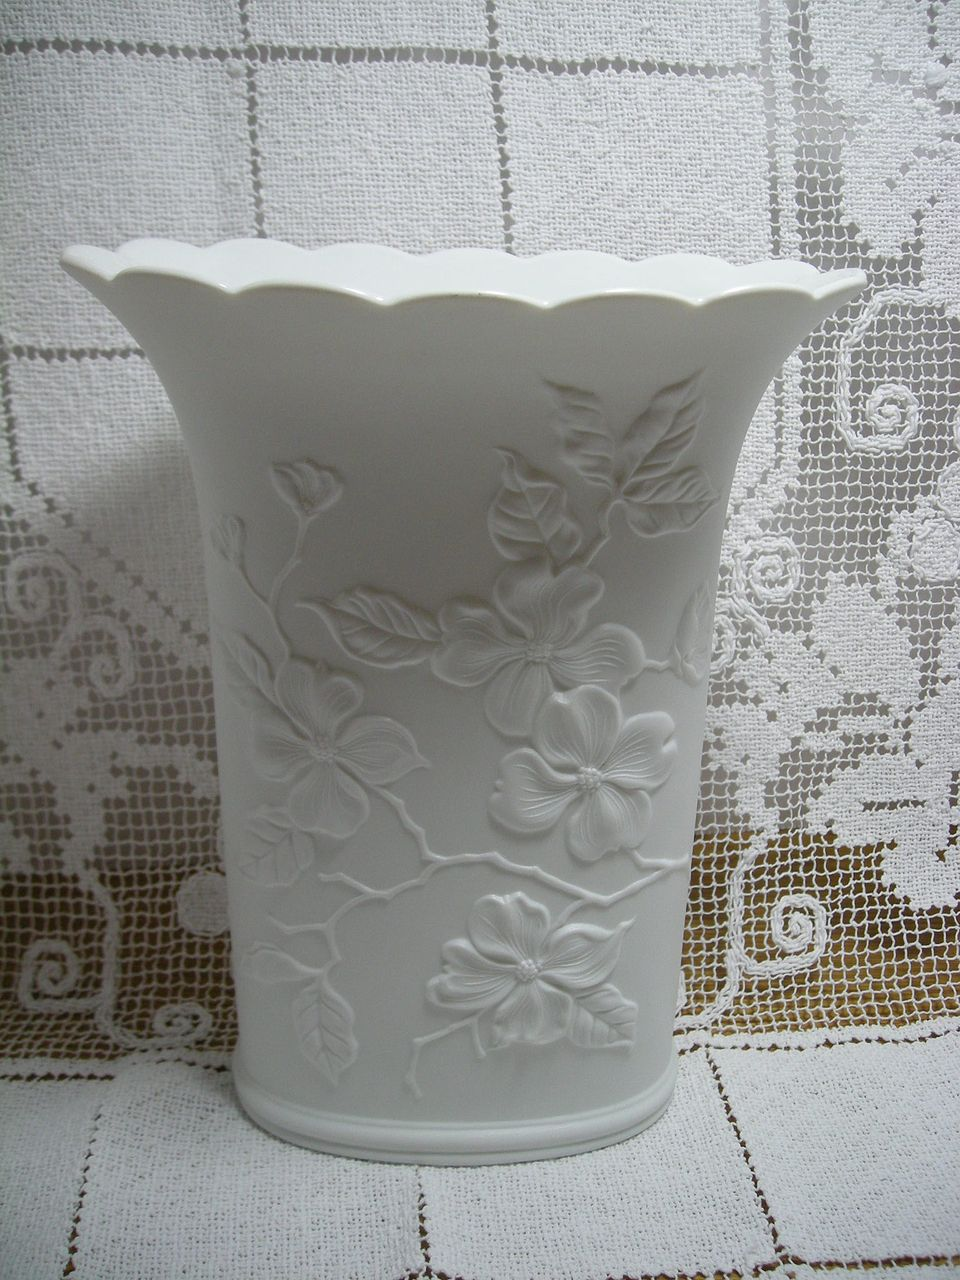 Vase Germany | European Pottery For Sale